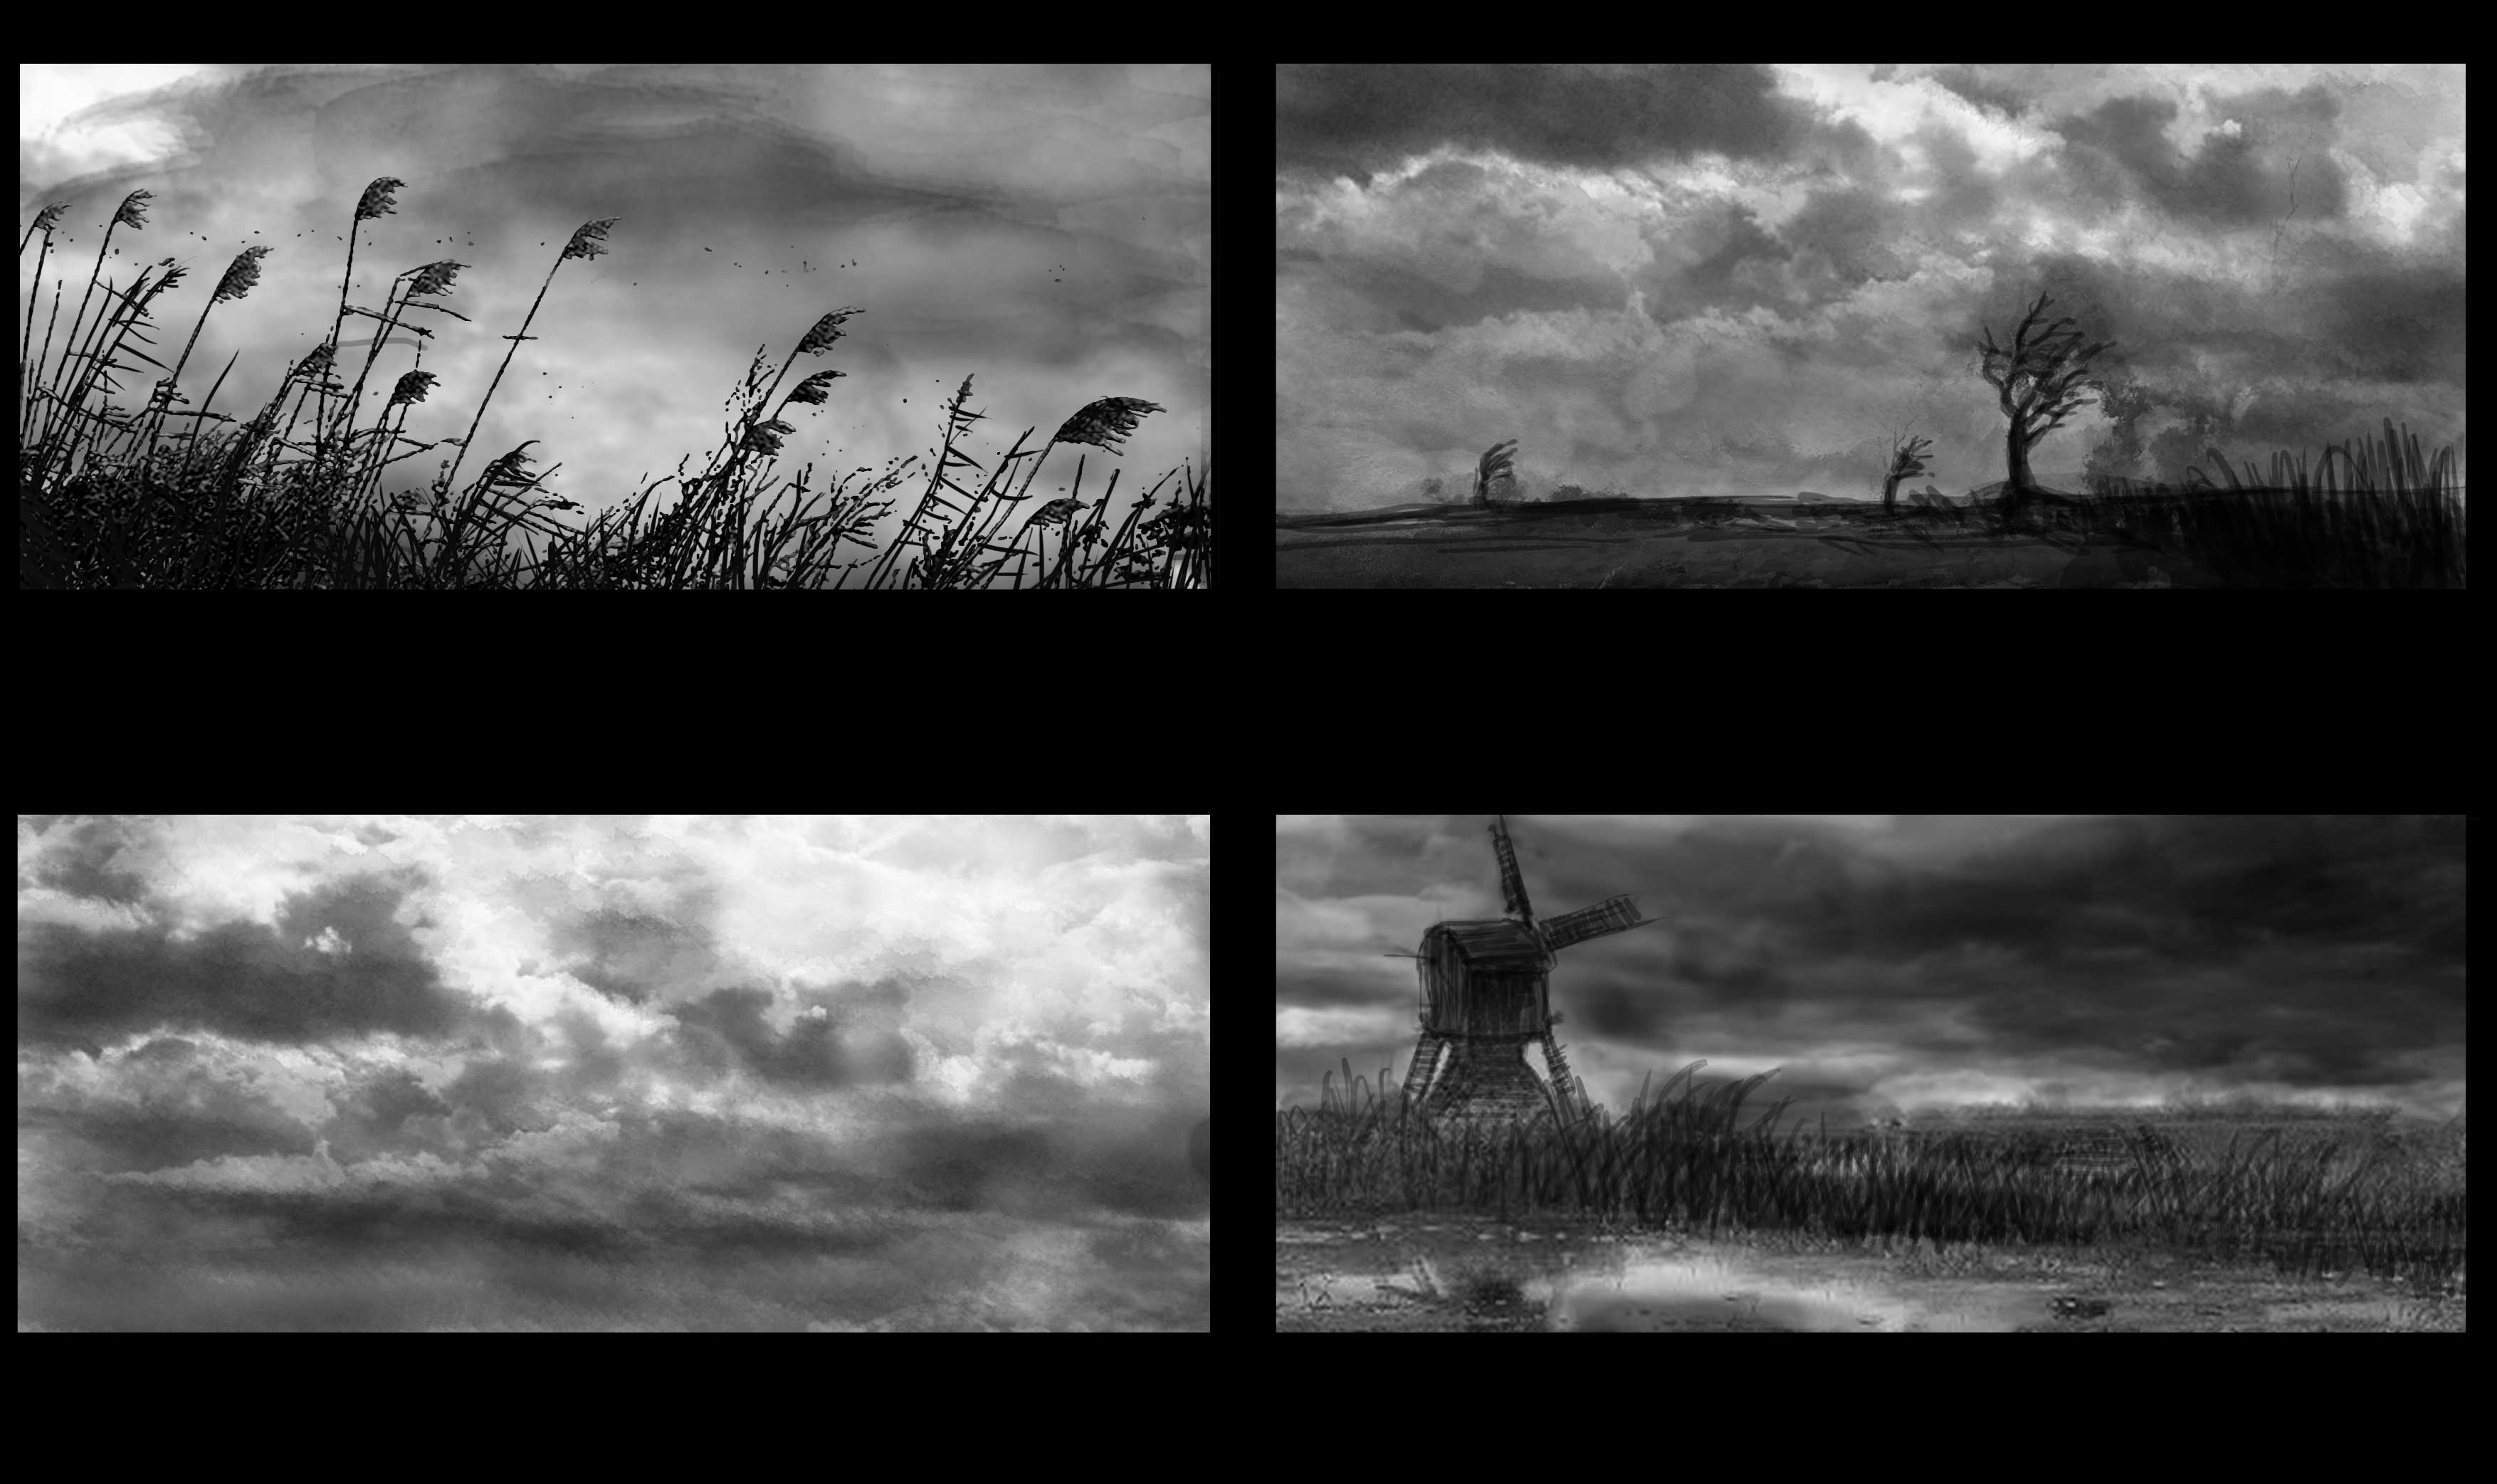 Holland - The Living Delta 3D model - Storyboard 1/7 for the shooting of the movie